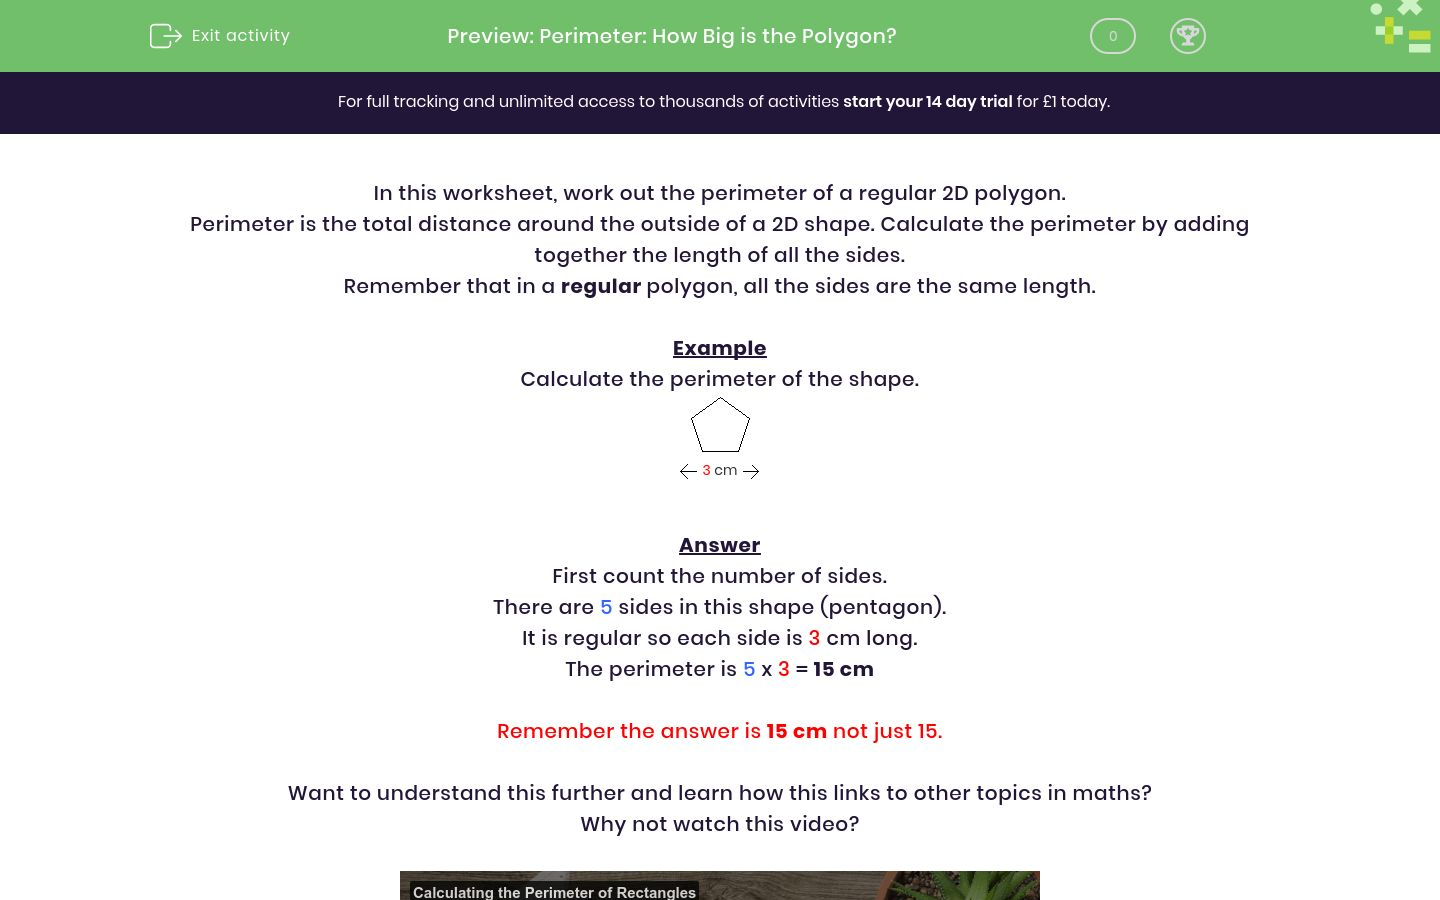 'Perimeter: How Big is the Polygon?' worksheet